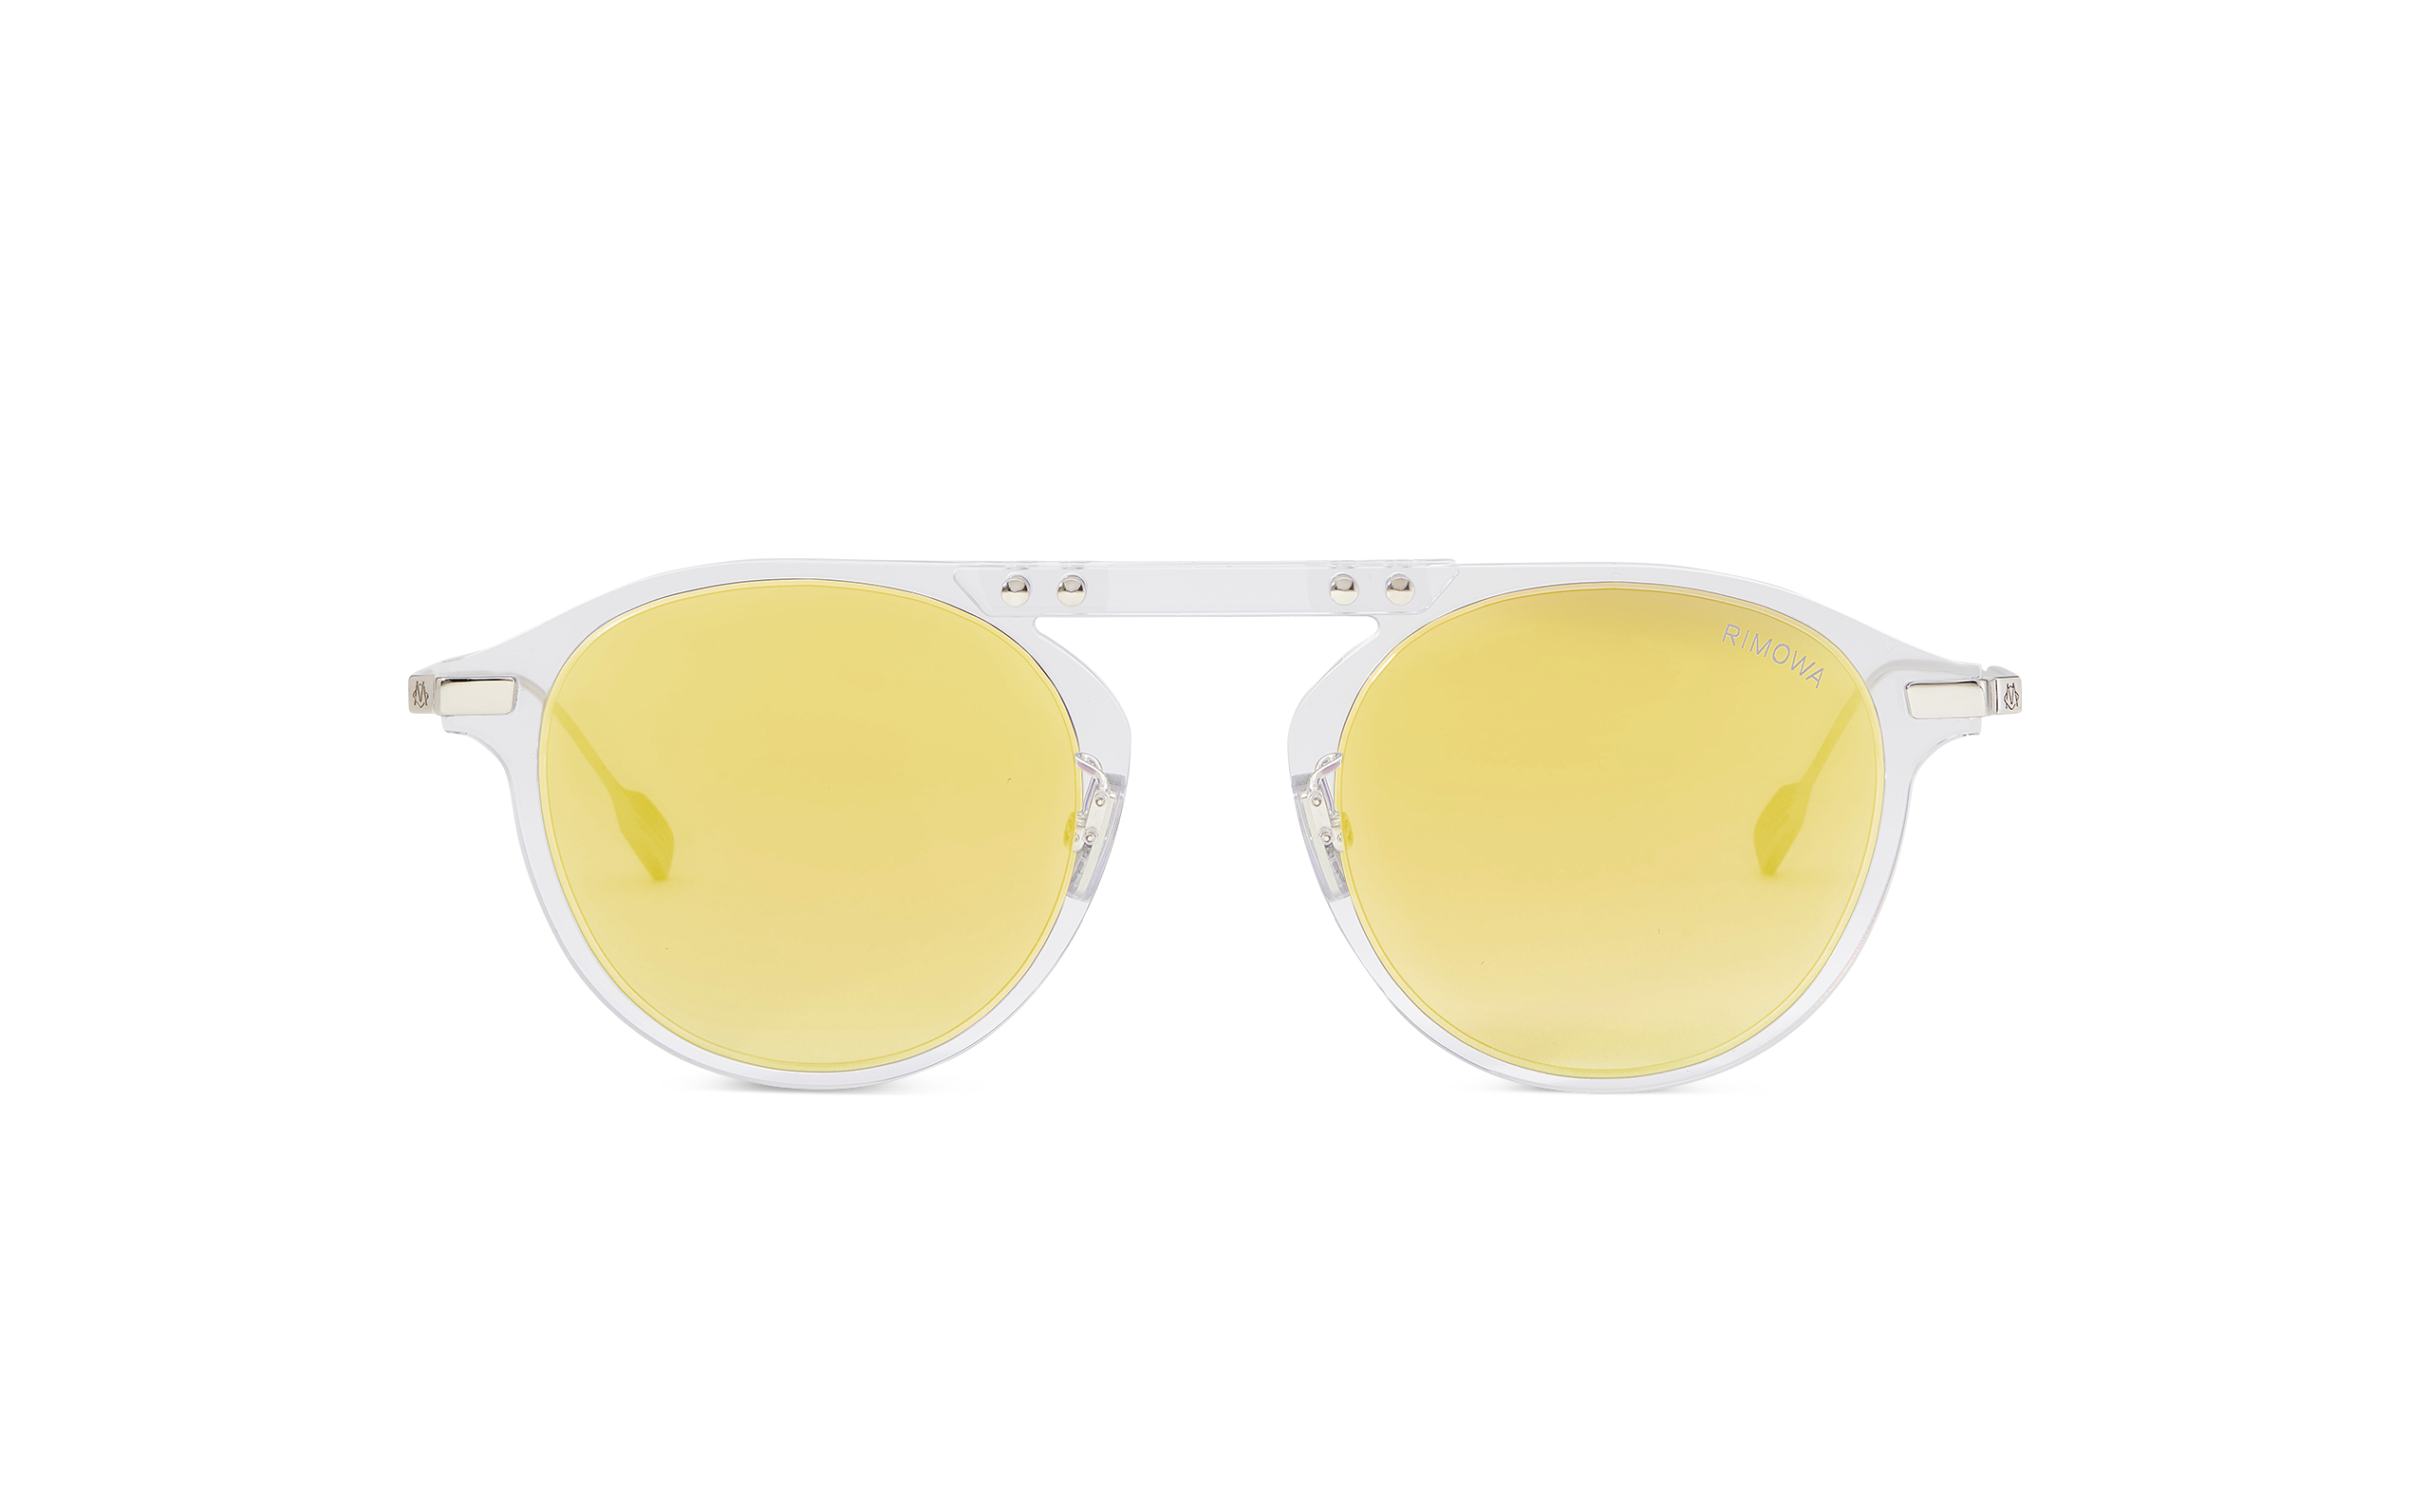 RIMOWA Eyewear Bridge Pantos Crystal Yellow Mirror